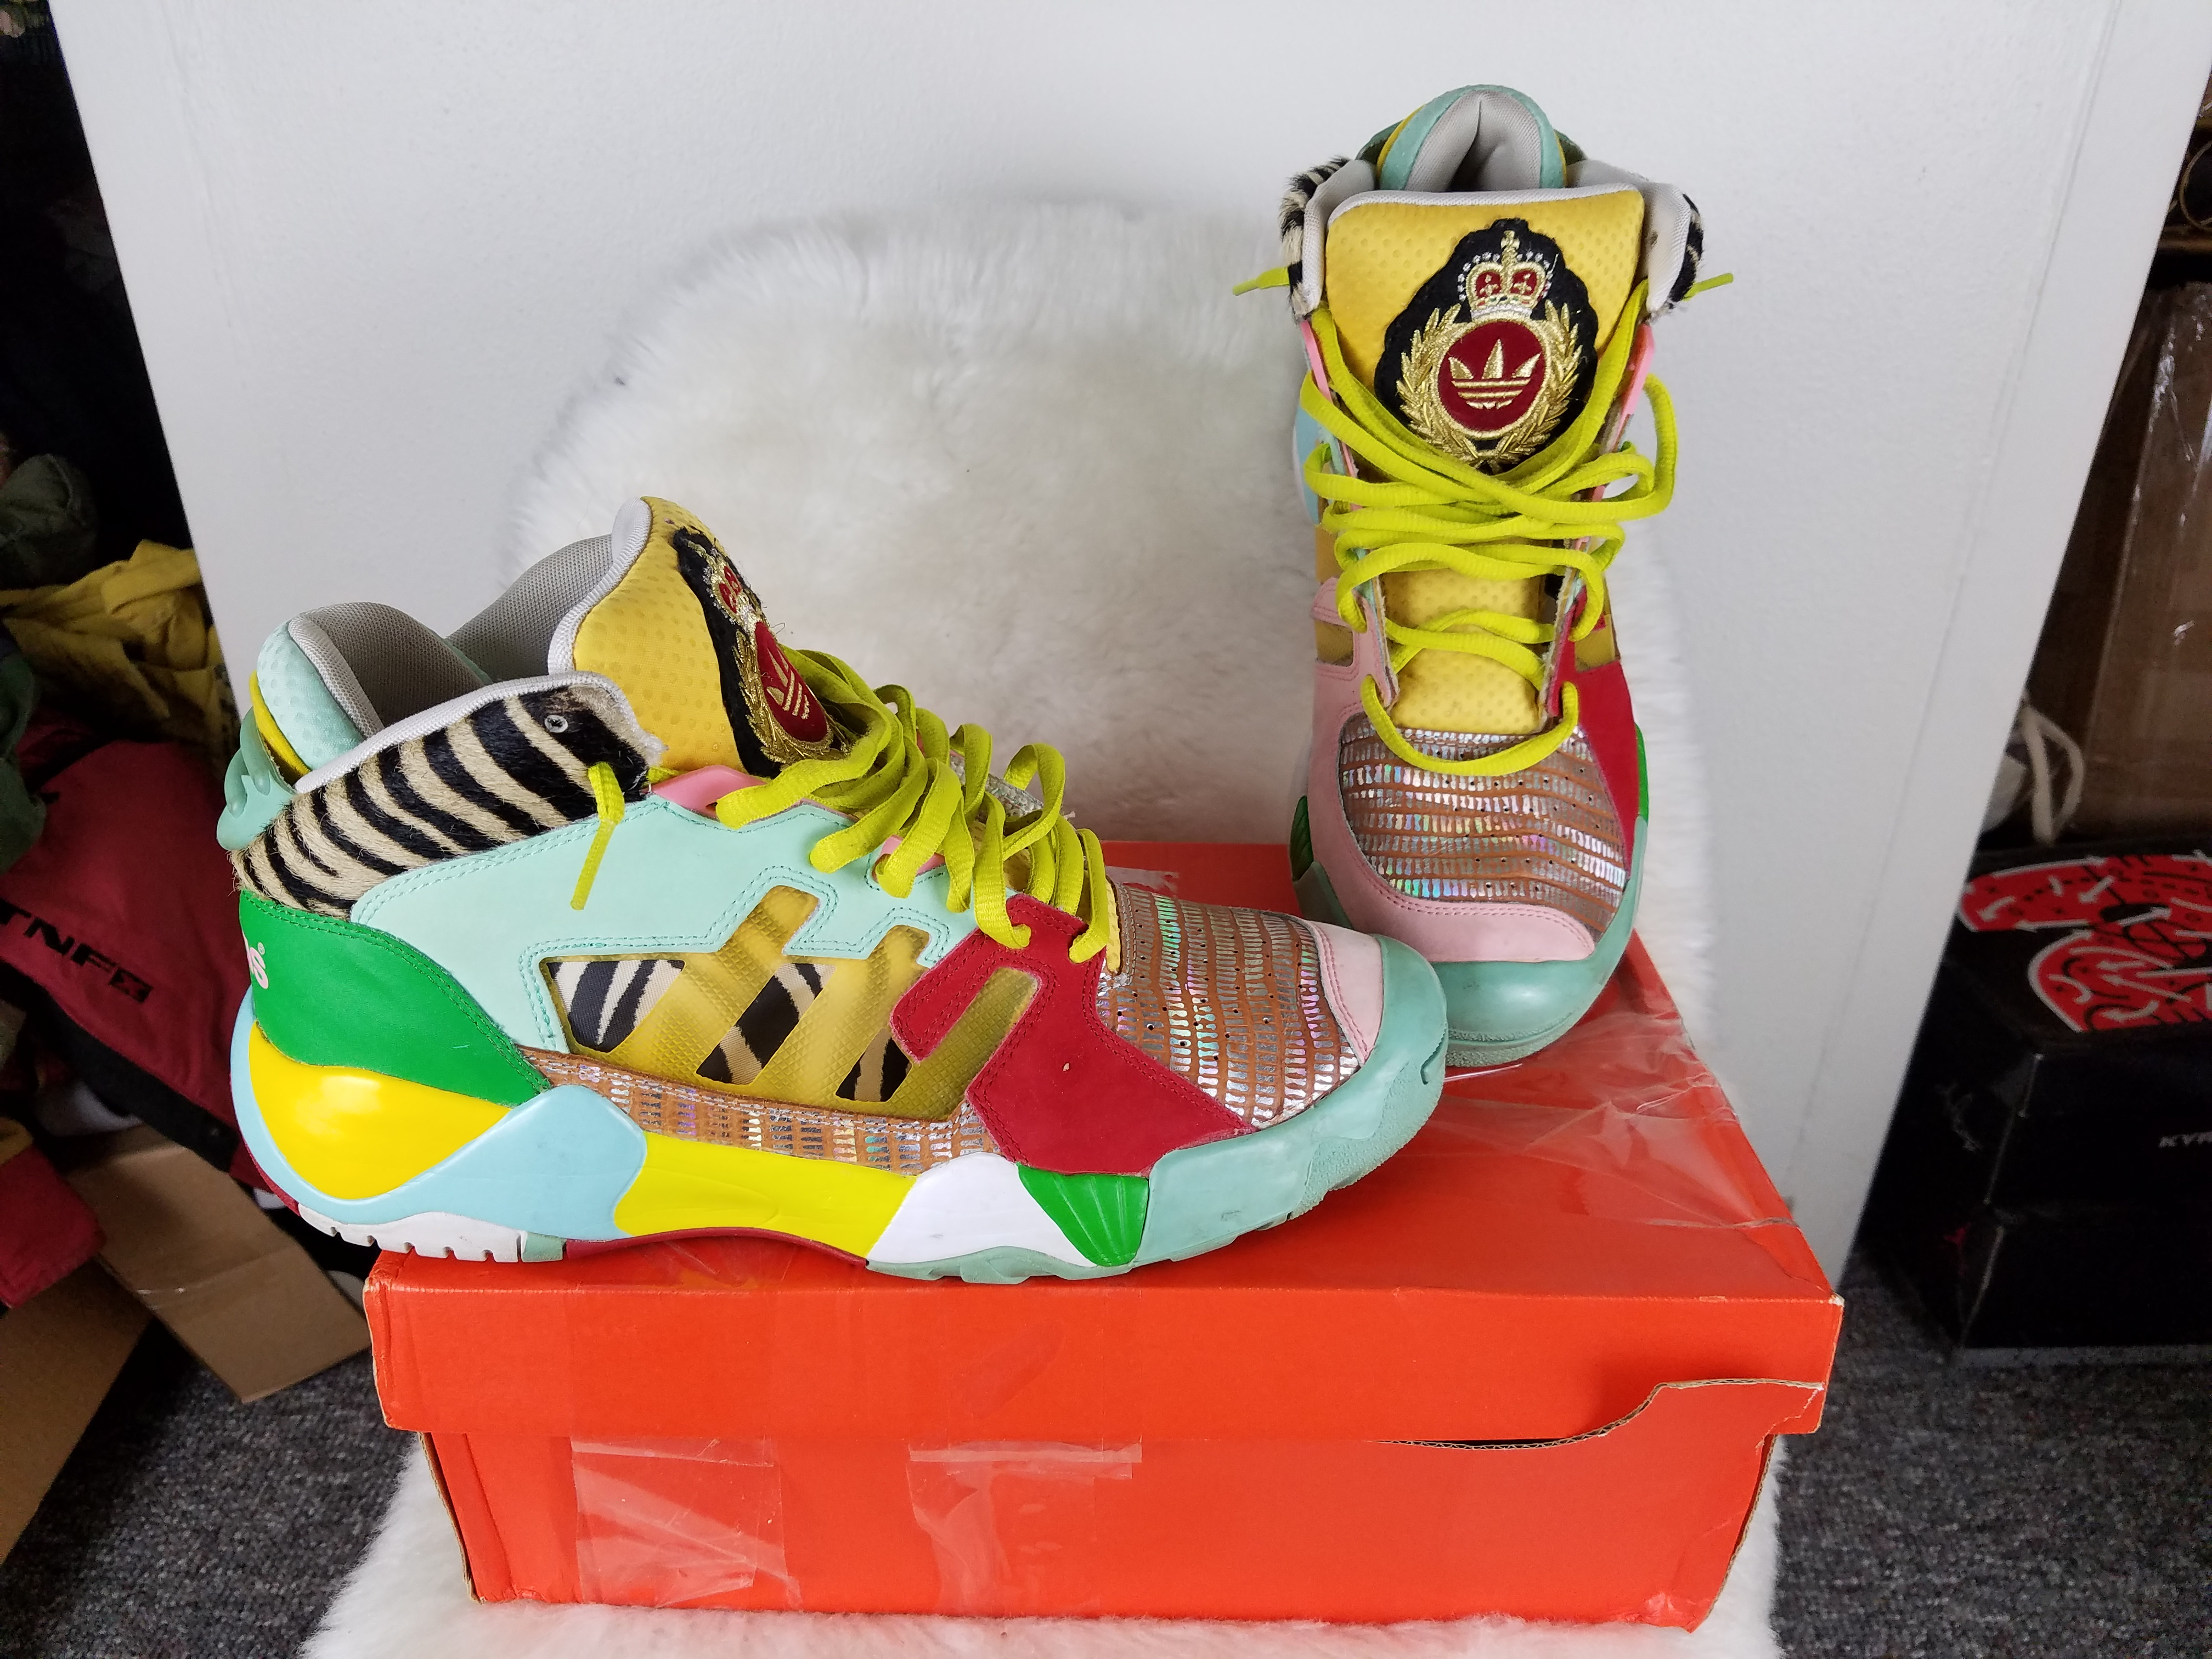 8b1f15d35e9d Adidas Streetball Zebra S S13 Size 11 - Hi-Top Sneakers for Sale - Grailed